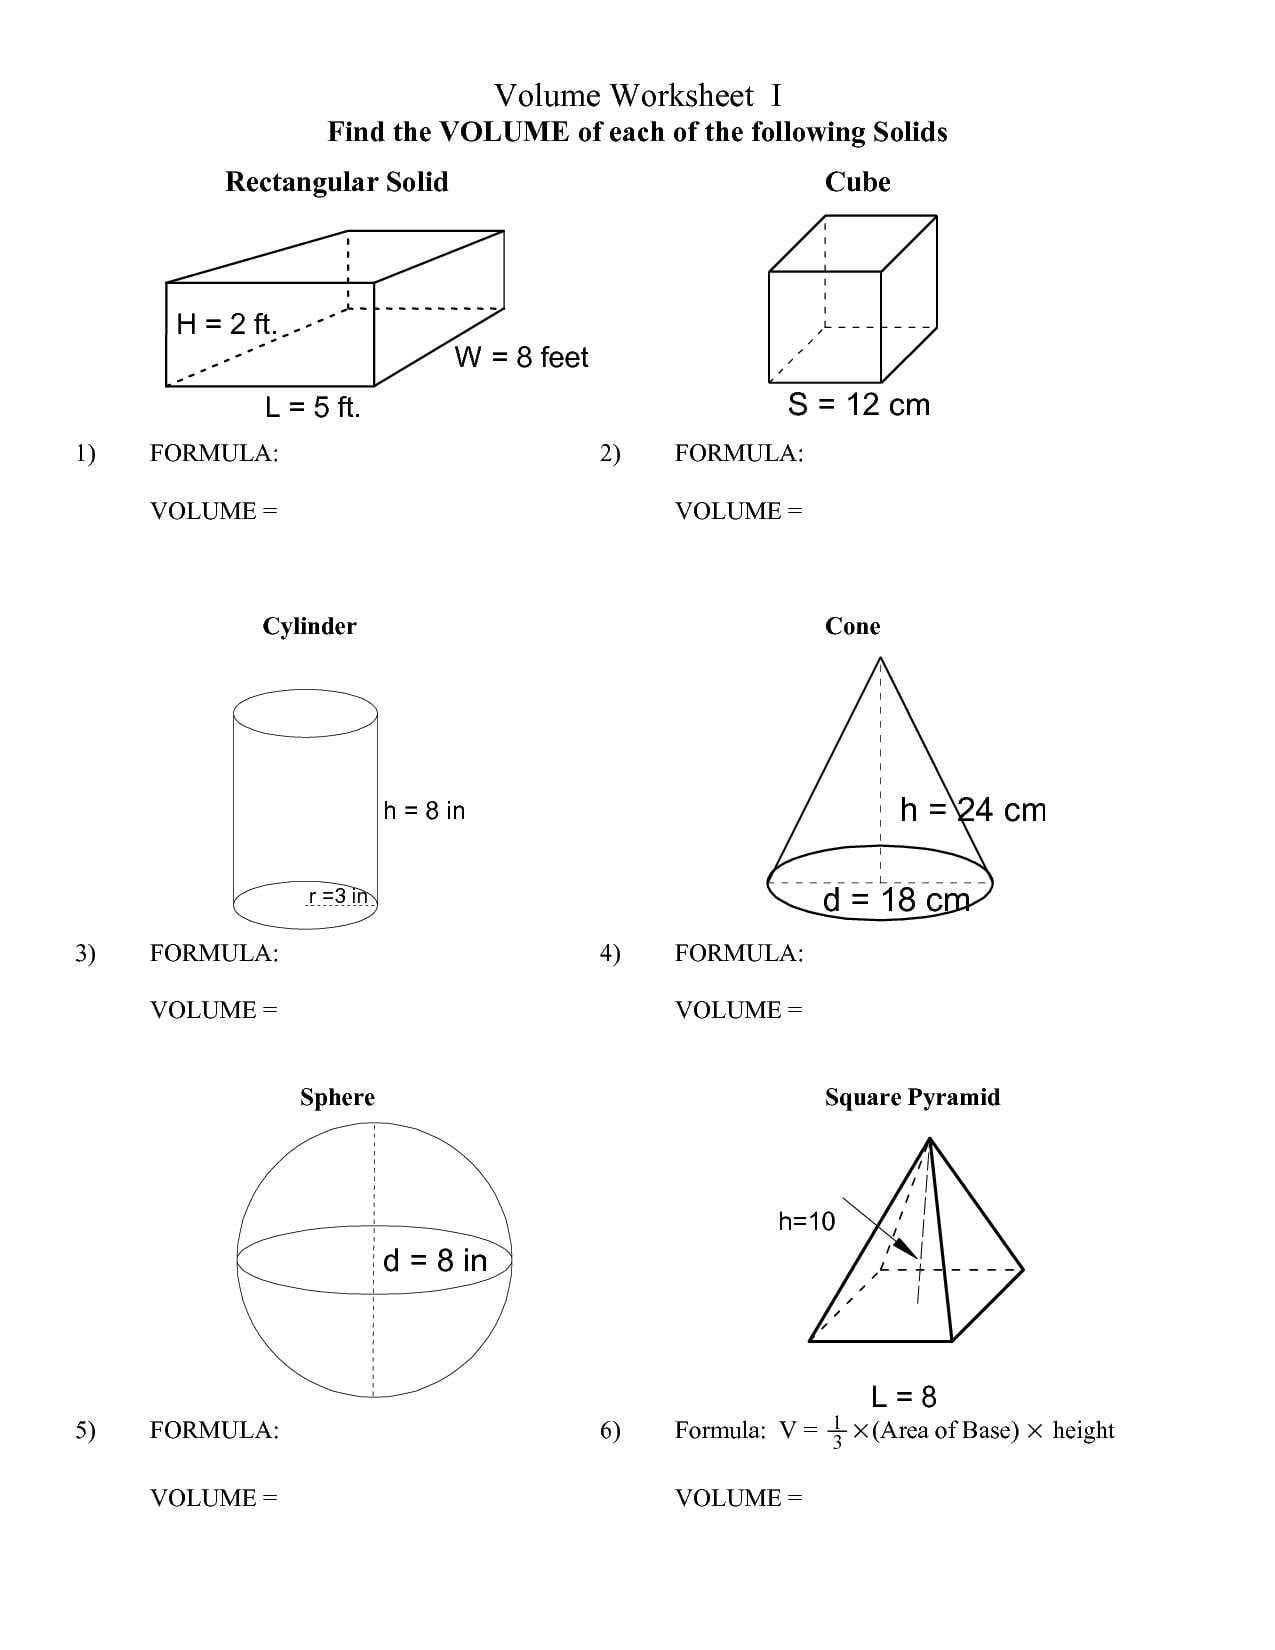 Surface Area Of Prisms And Cylinders Worksheet Answers  Briefencounters Also Surface Area Of Prisms And Cylinders Worksheet Answers